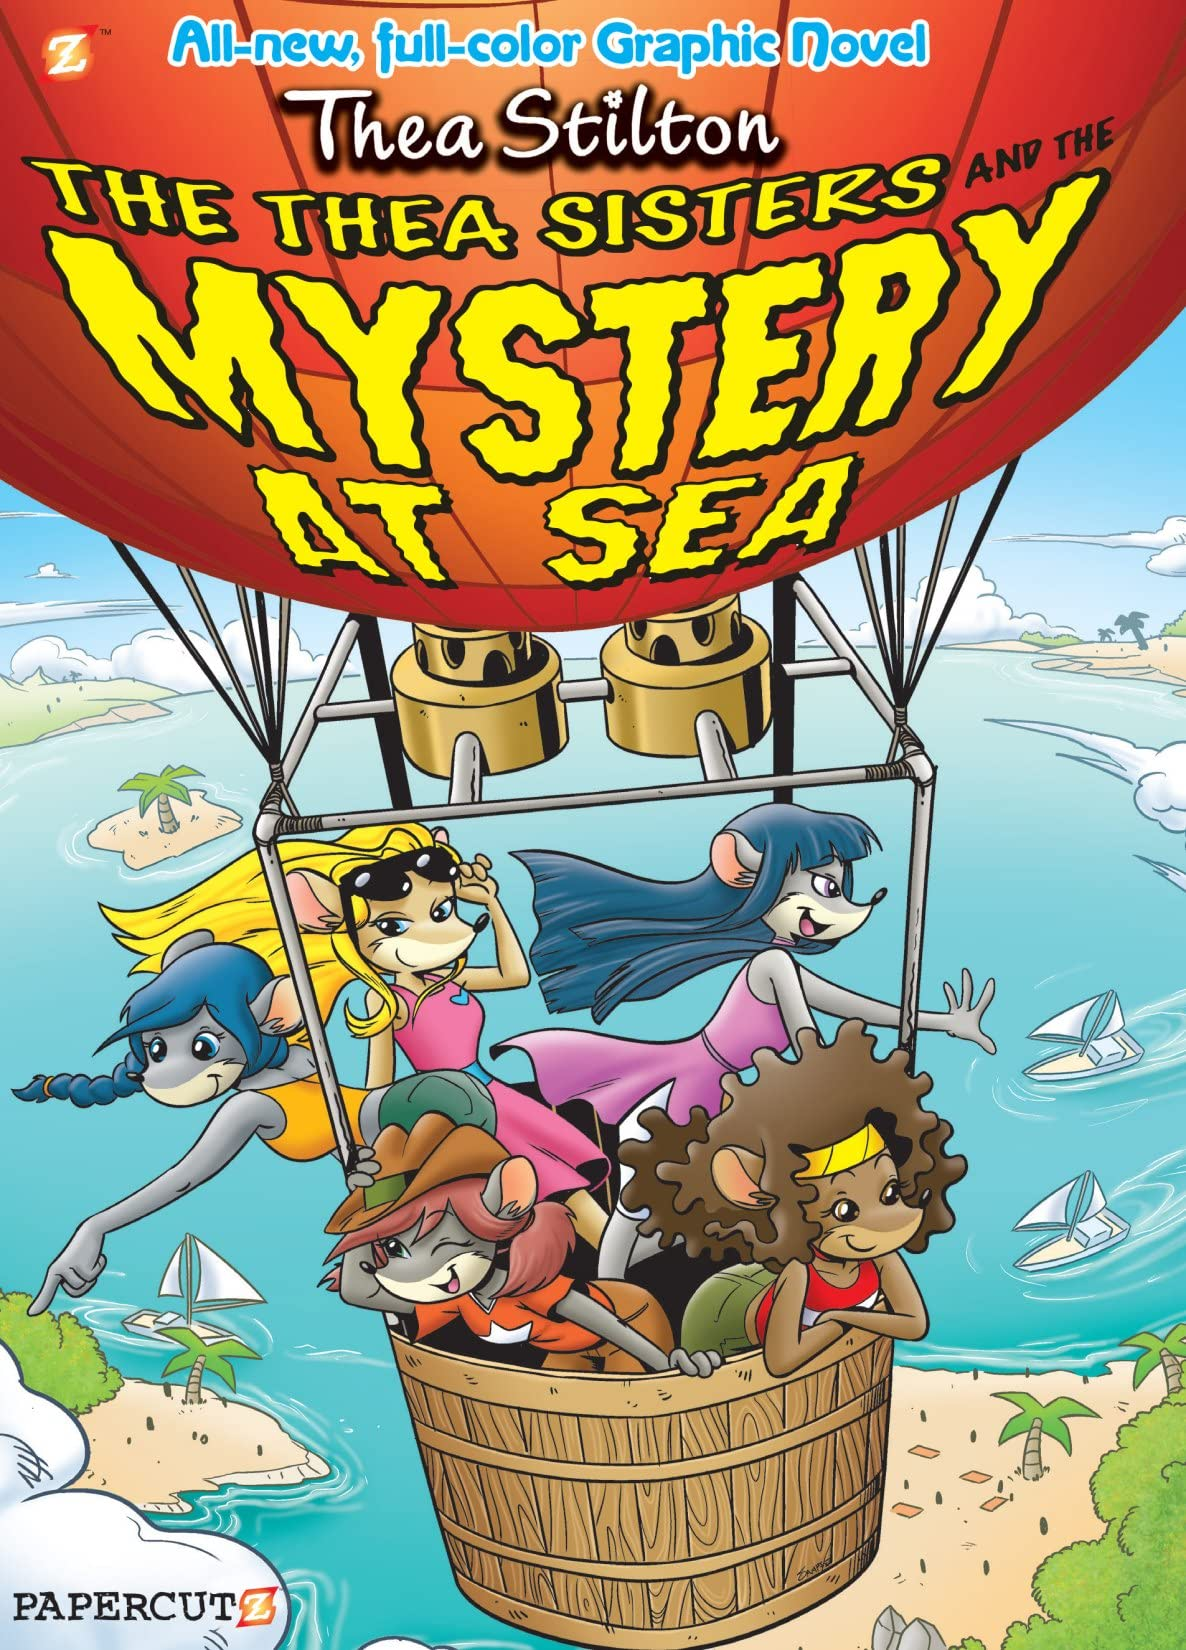 Thea Stilton Vol. 6: The Thea Sisters and the Mystery at Sea